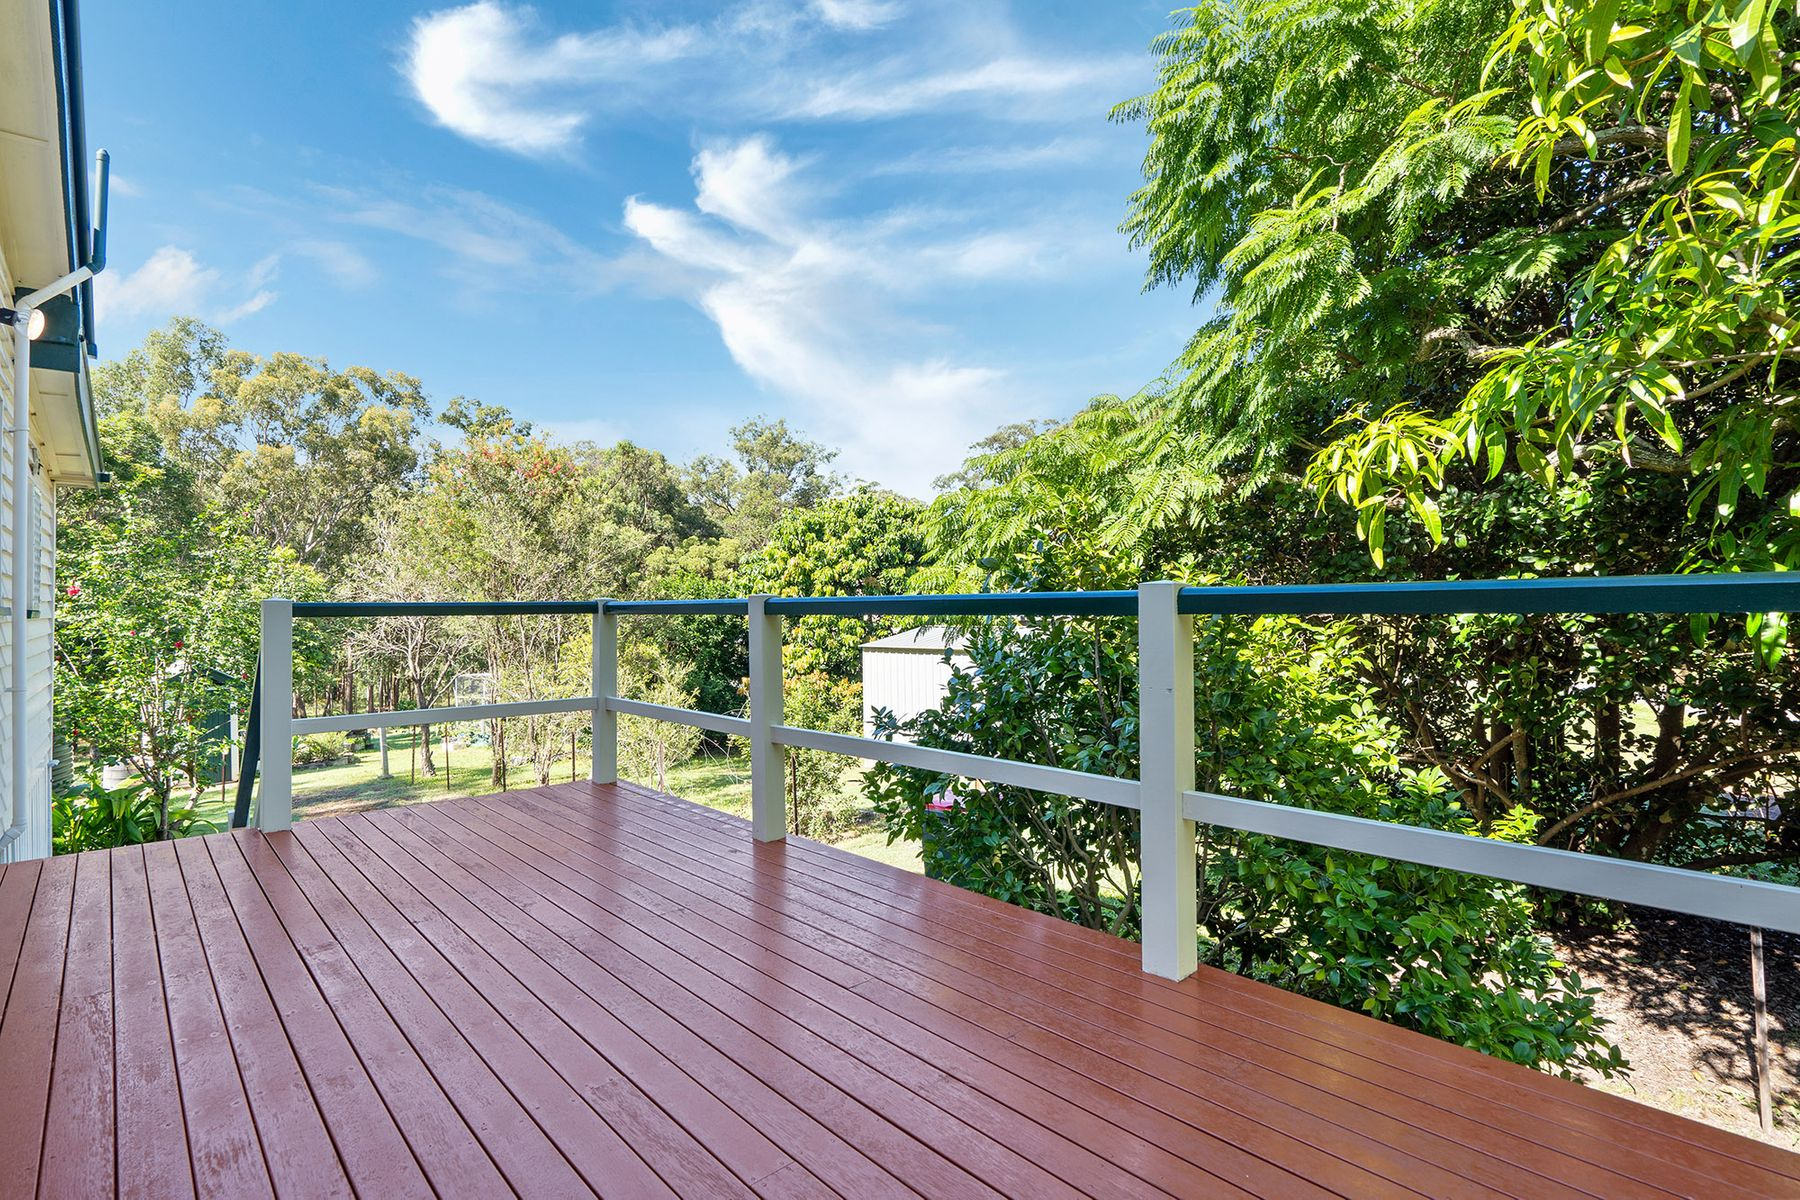 41 Grieve Road, Rochedale, QLD 4123